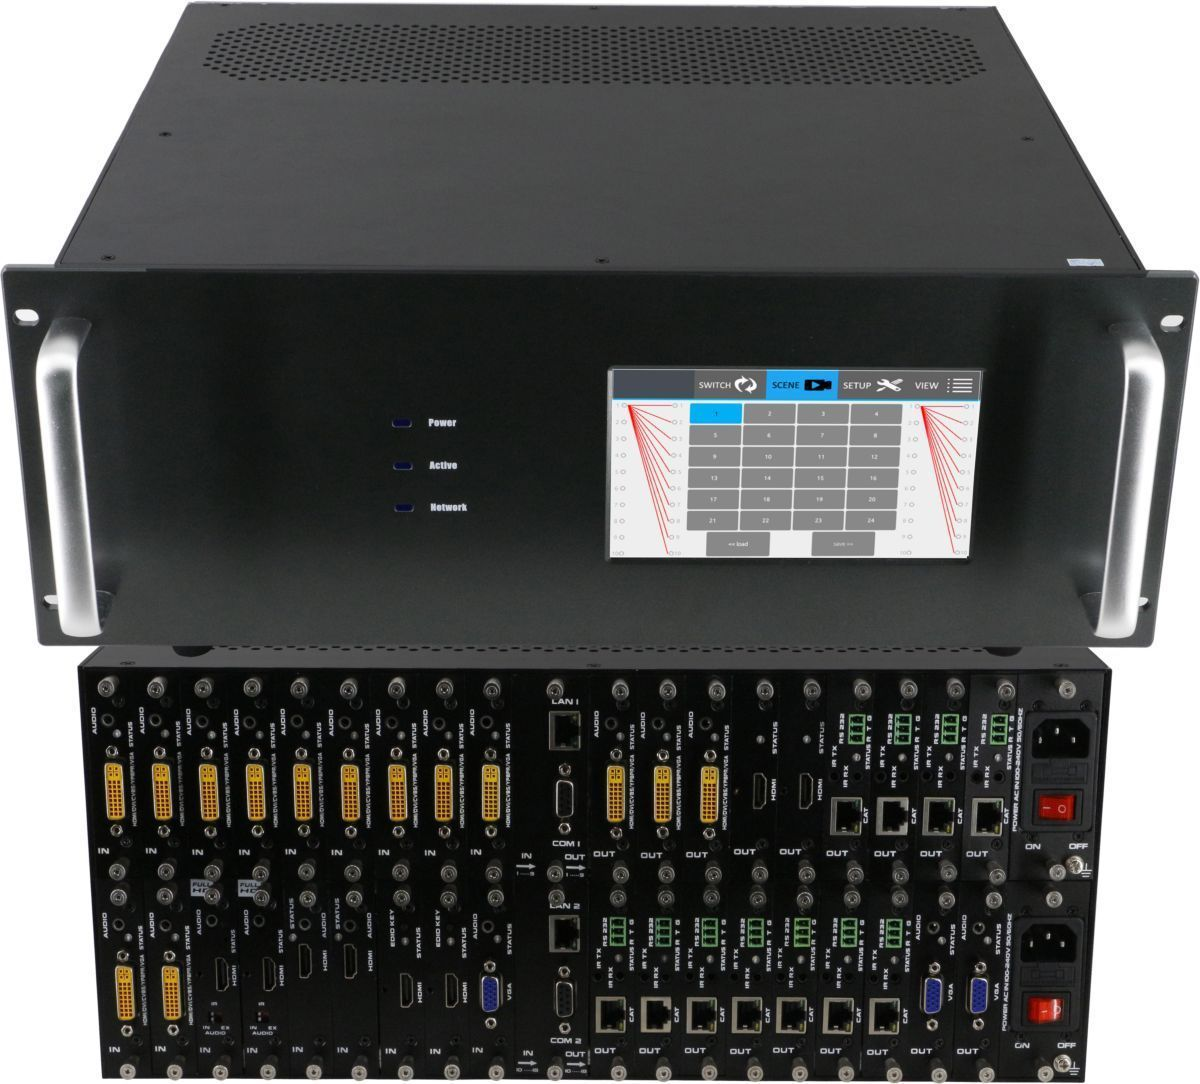 4K 9x18 HDMI Matrix Switcher with Color Touchscreen